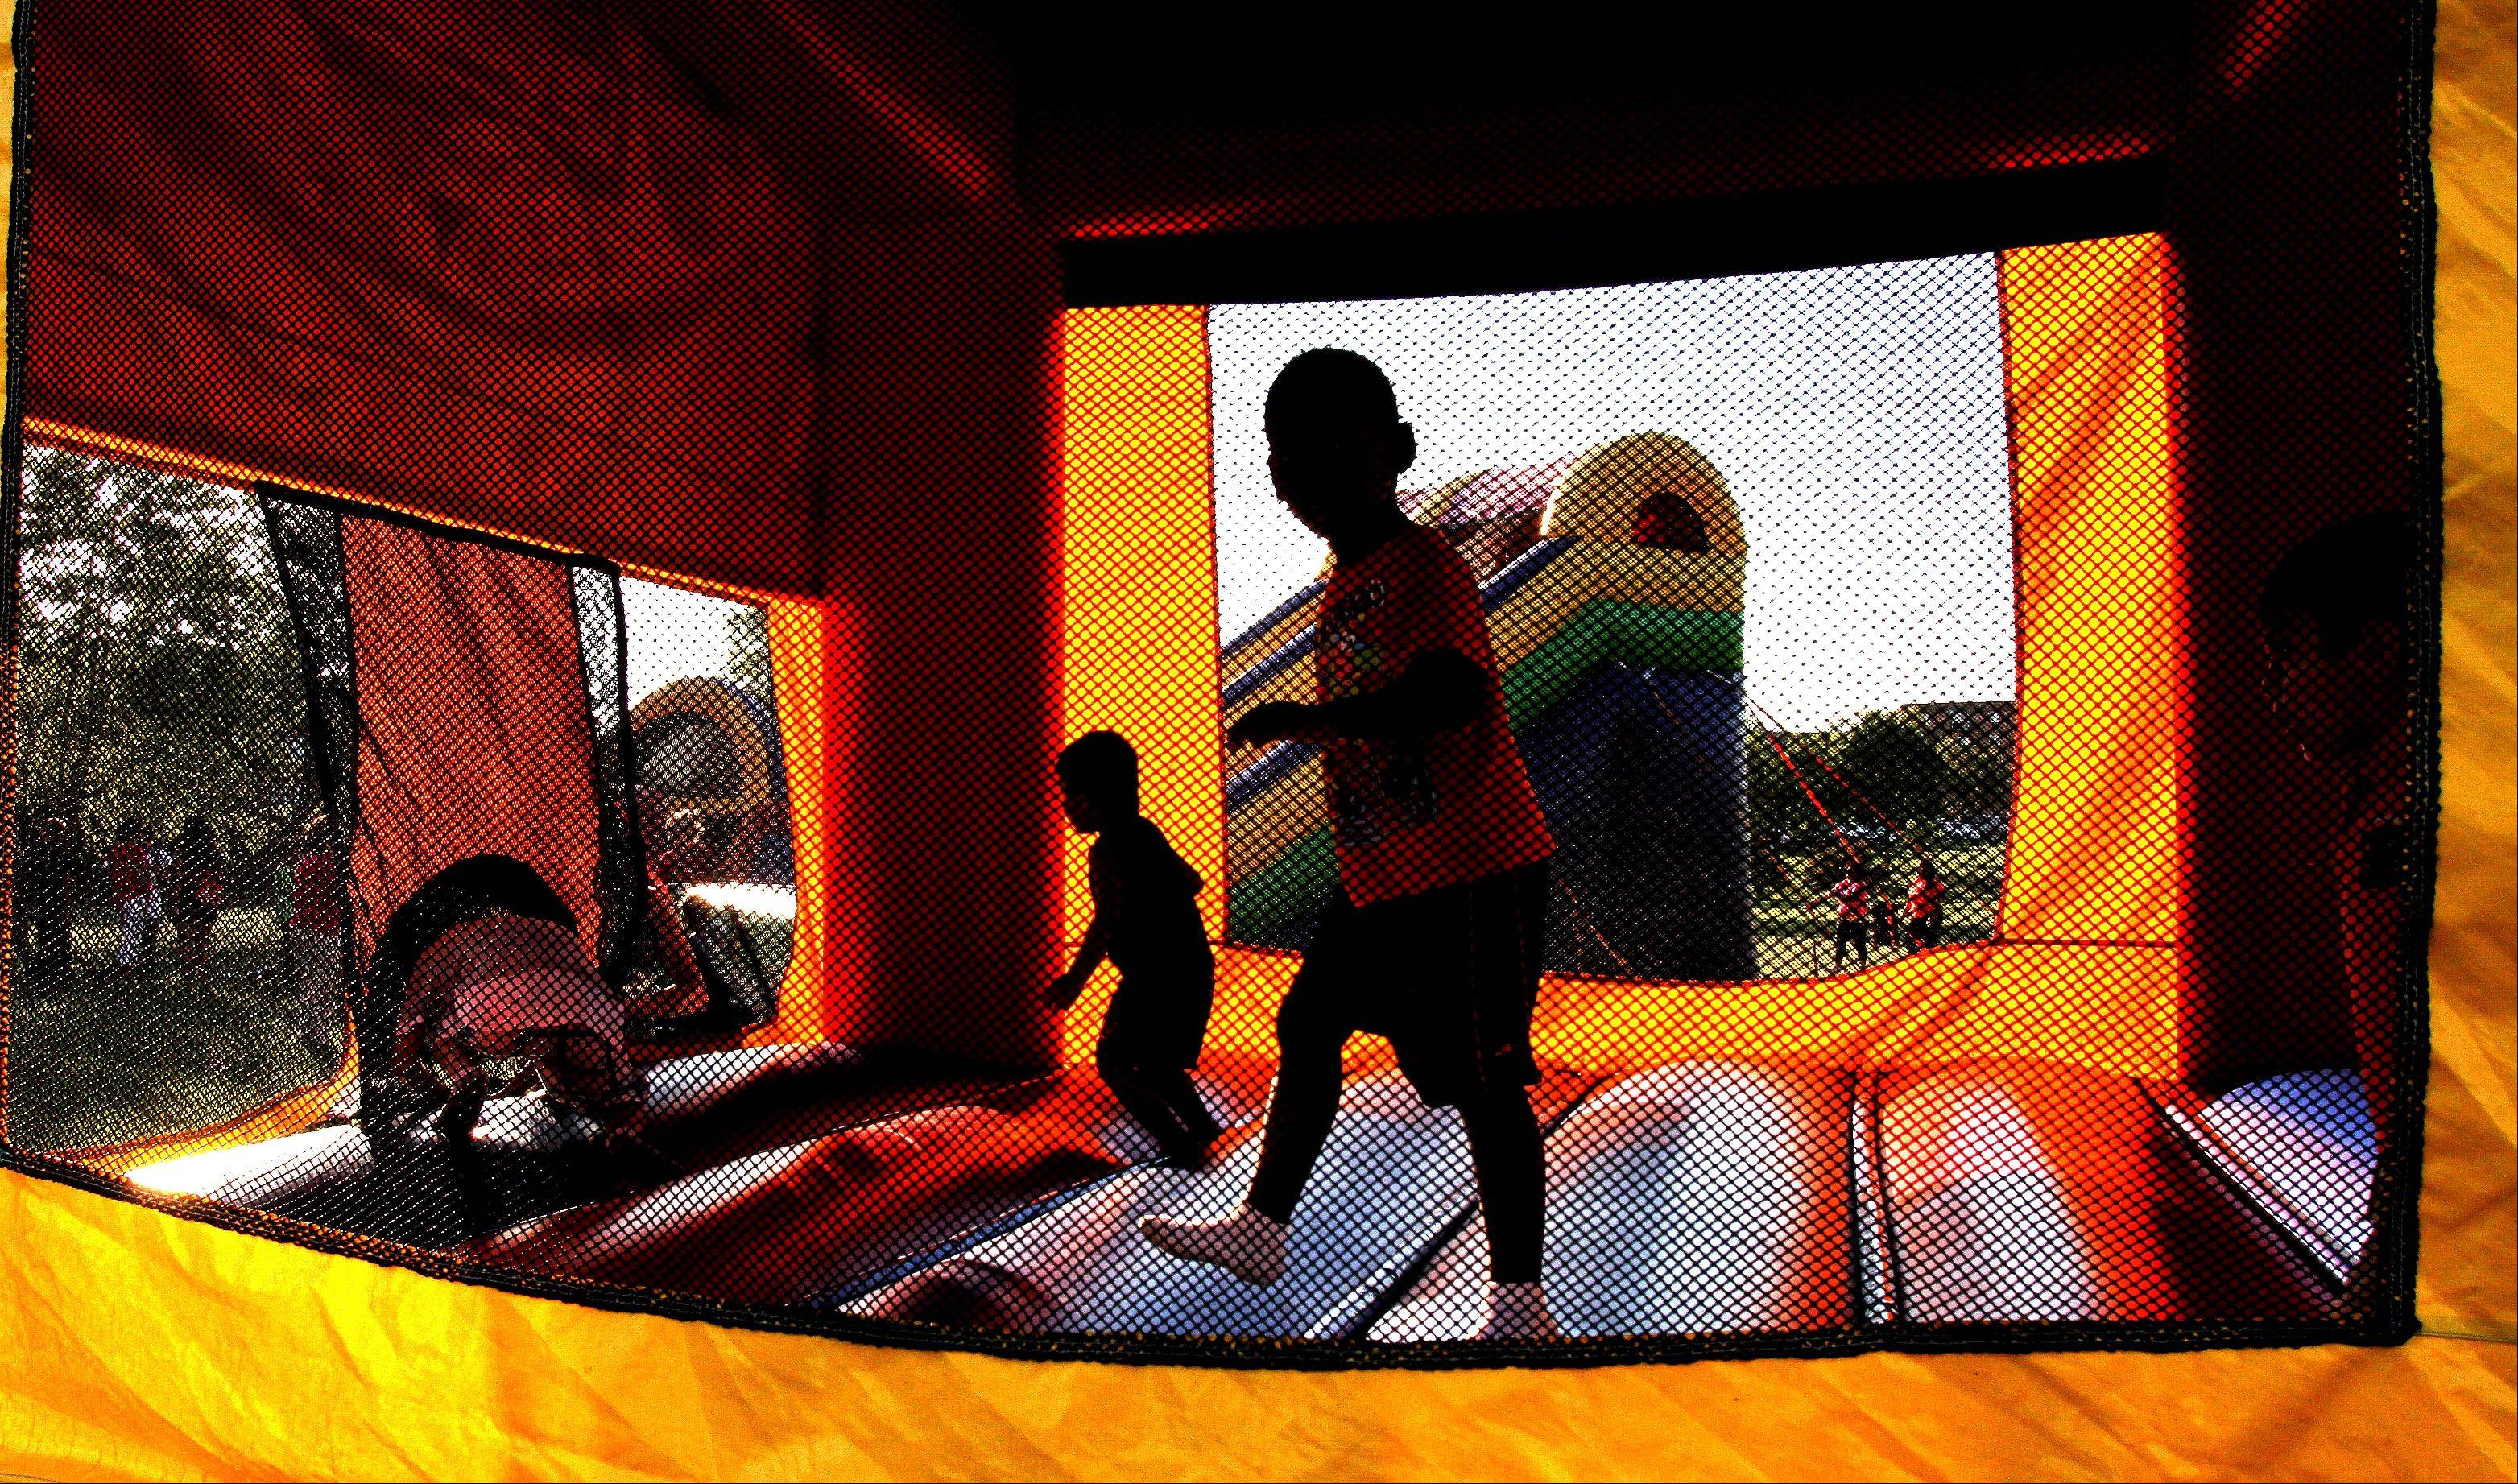 Inflatable bouncers and slides were part of the fun at National Night Out at Community Park in Carol Stream on Tuesday.